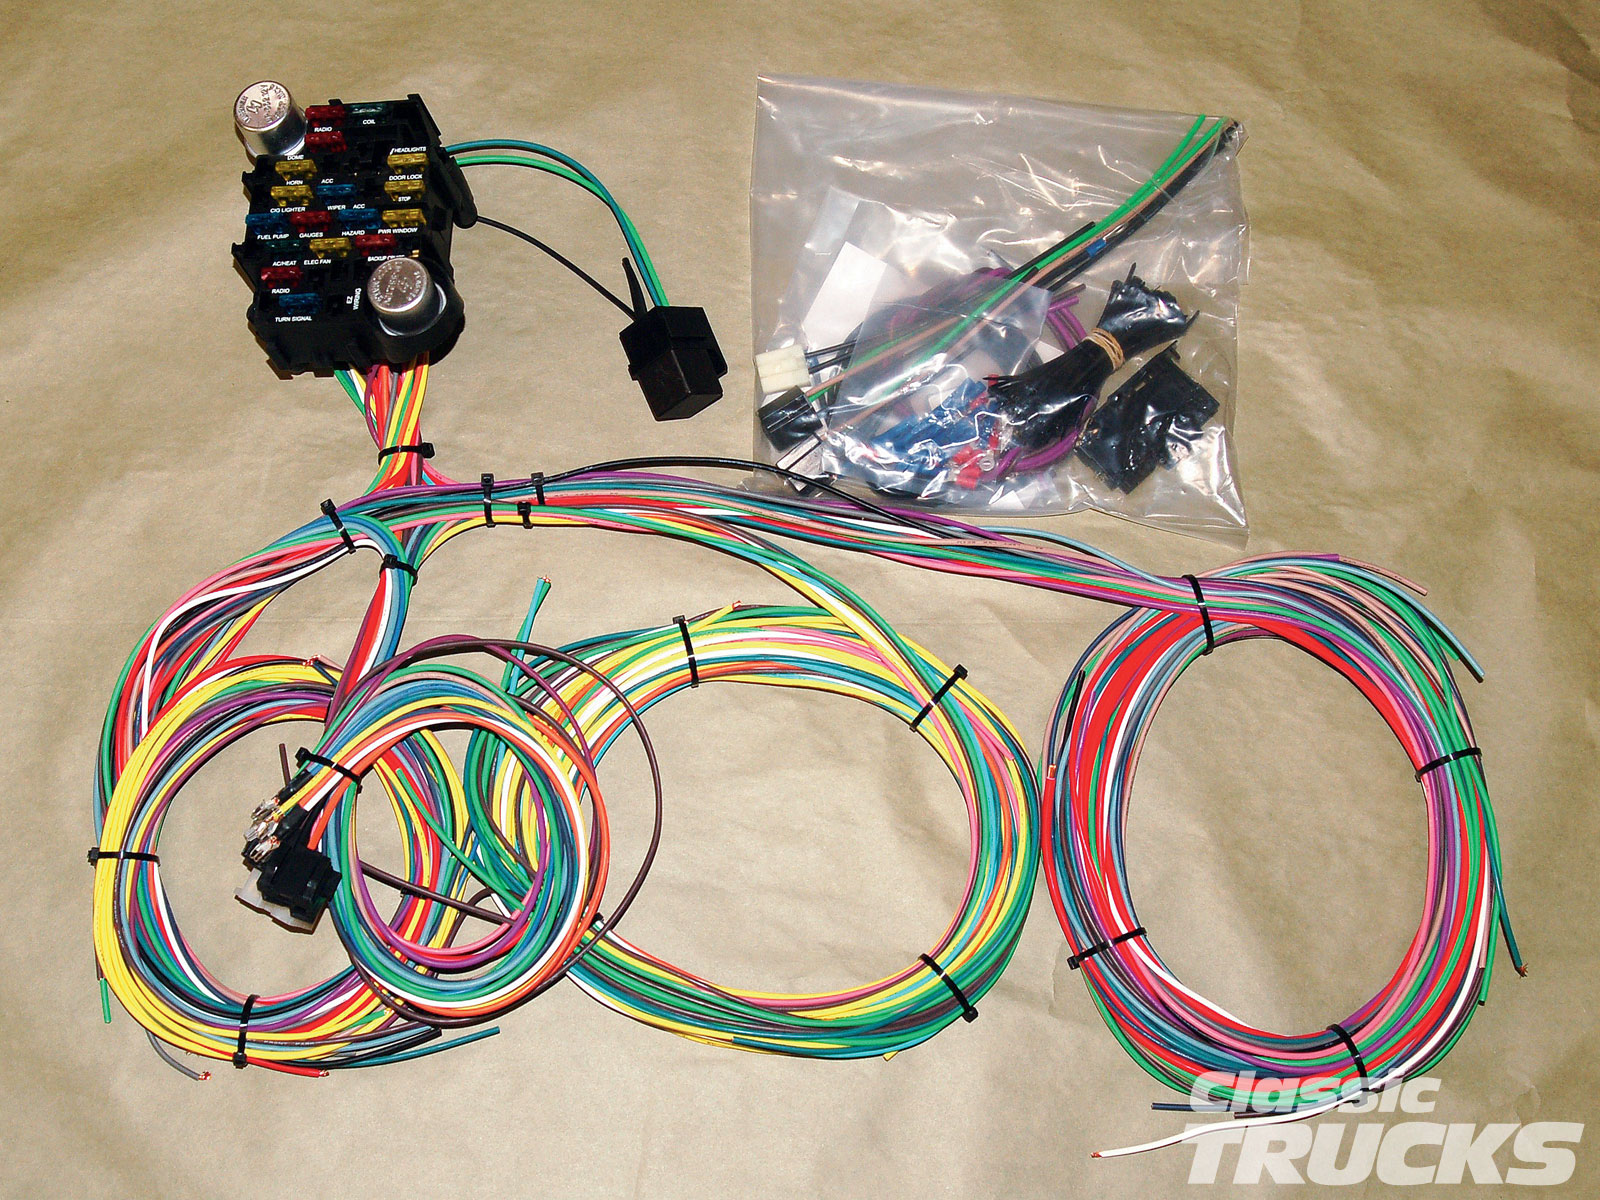 1010clt 02 o aftermarket wiring harness install kit?resize\\\=665%2C499 painless wiring harness australia tamahuproject org painless wiring harness australia at alyssarenee.co